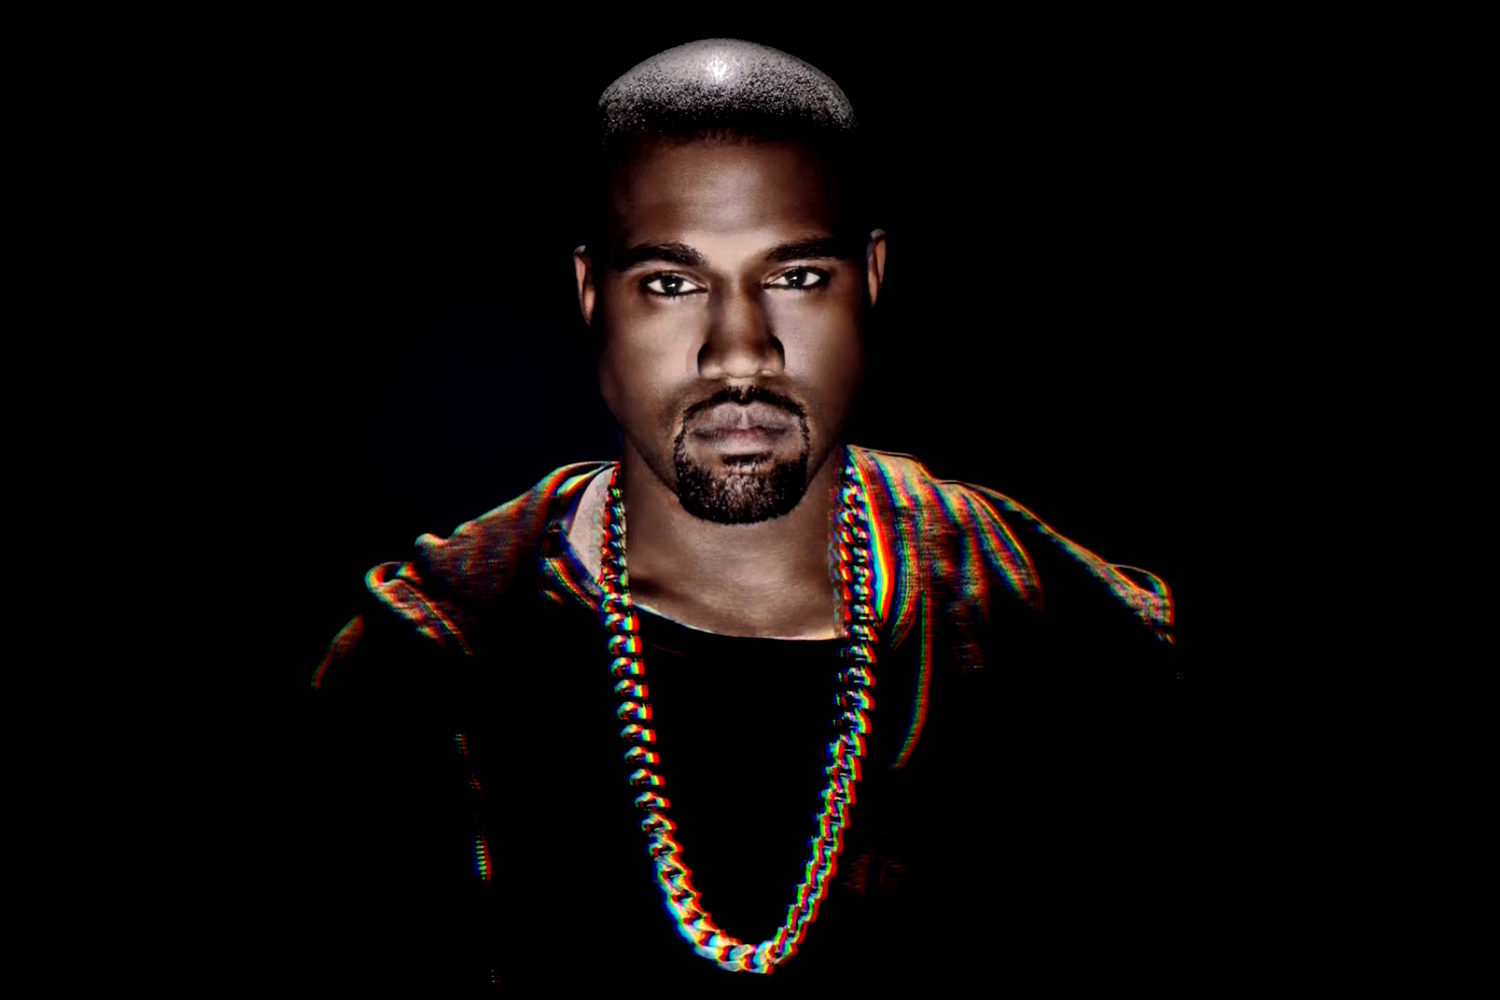 Kanye West drops new track 'Only One' feat. Paul McCartney